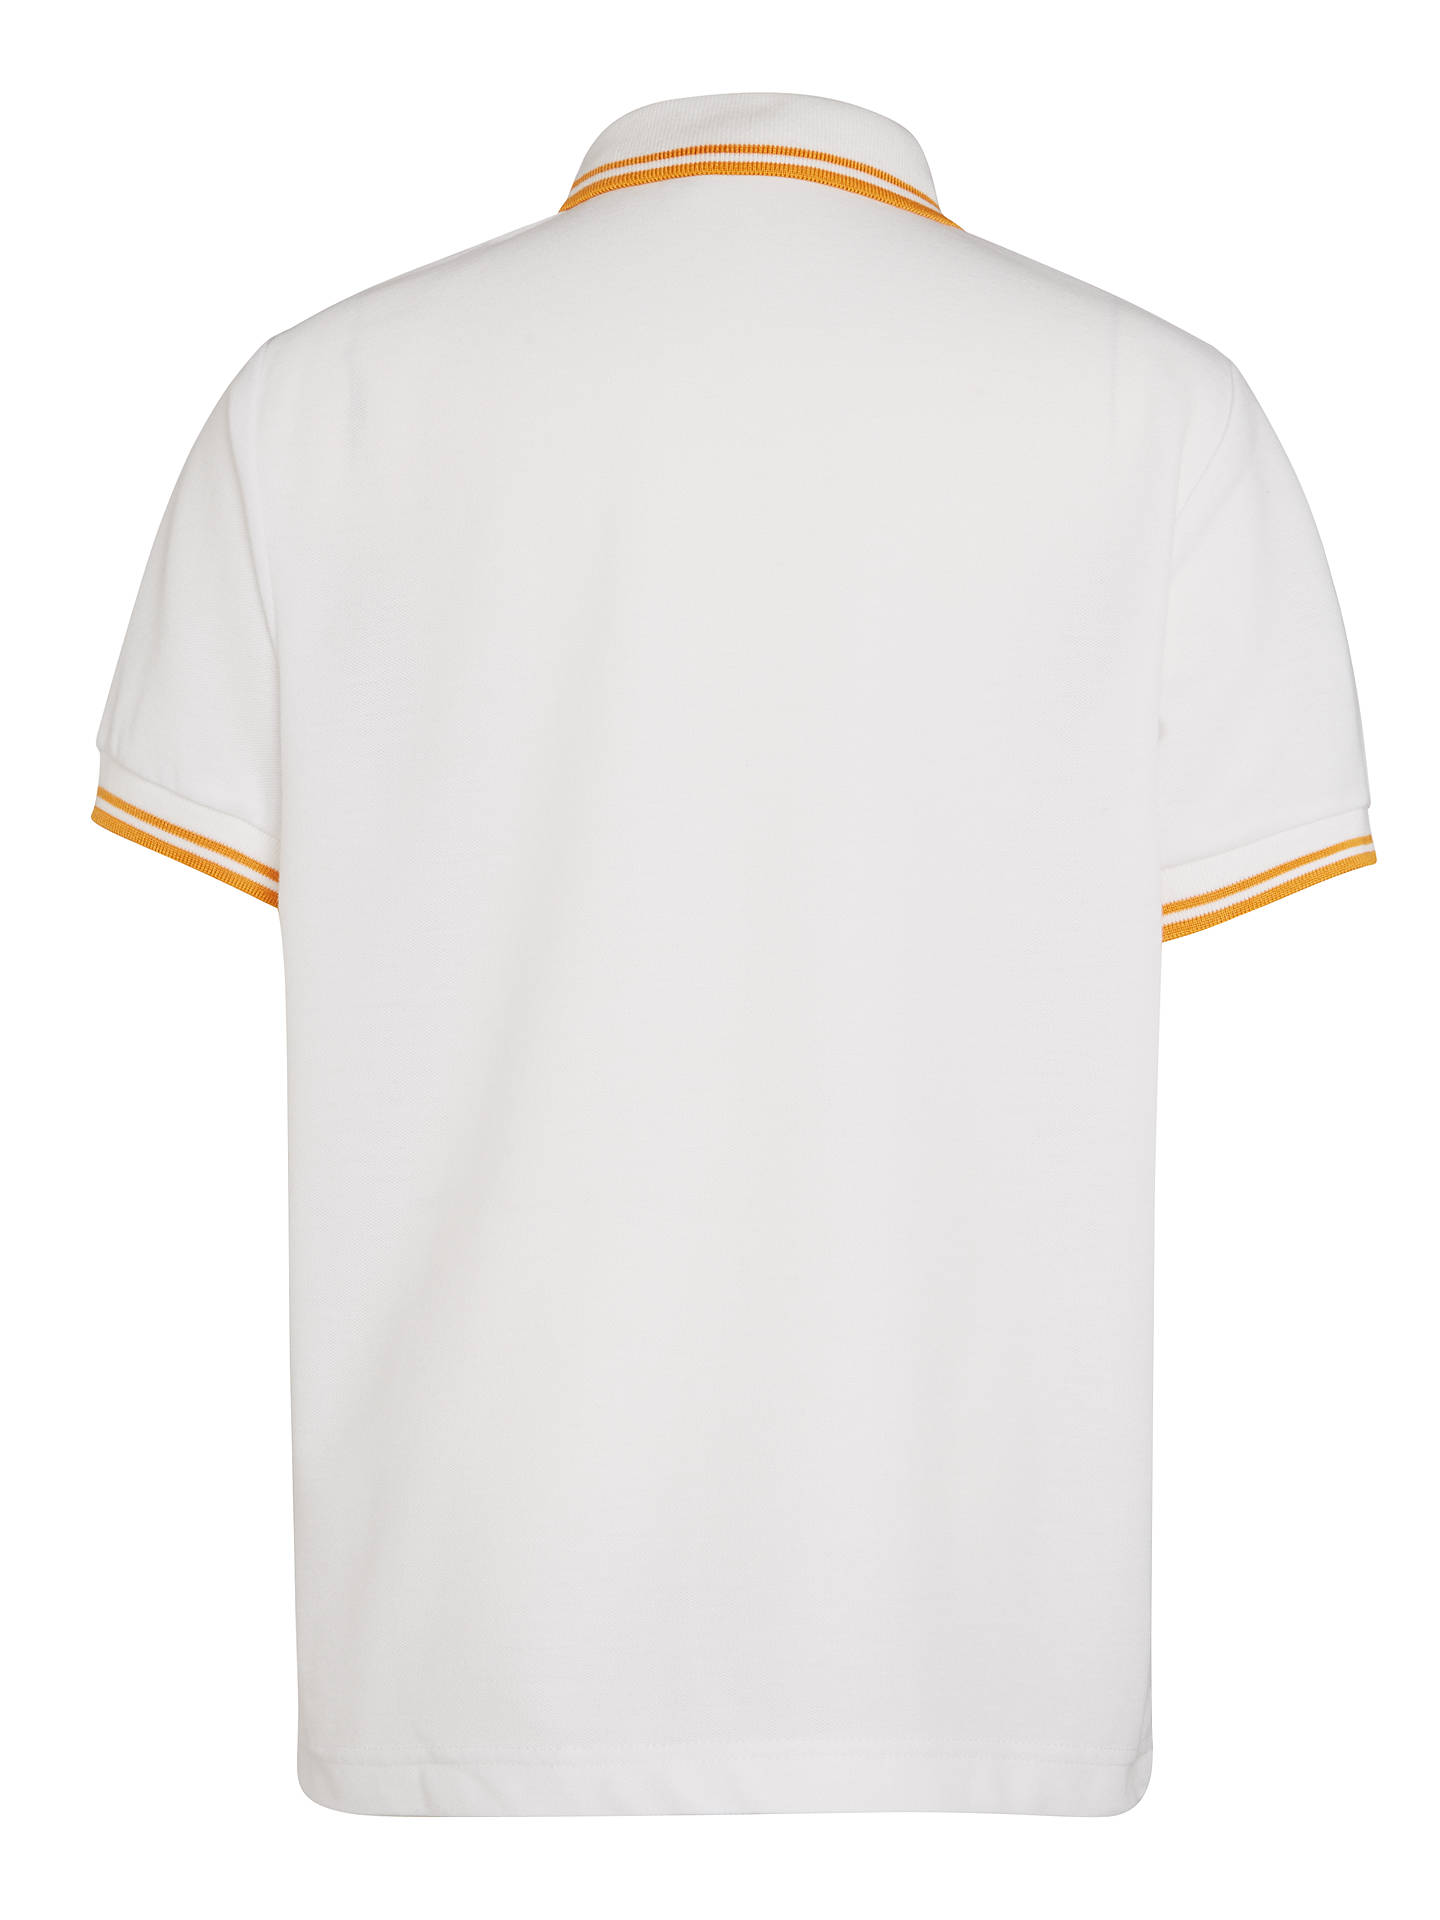 "Buy St John's College St David's House Unisex Polo Shirt, White, Chest 26"" Online at johnlewis.com"